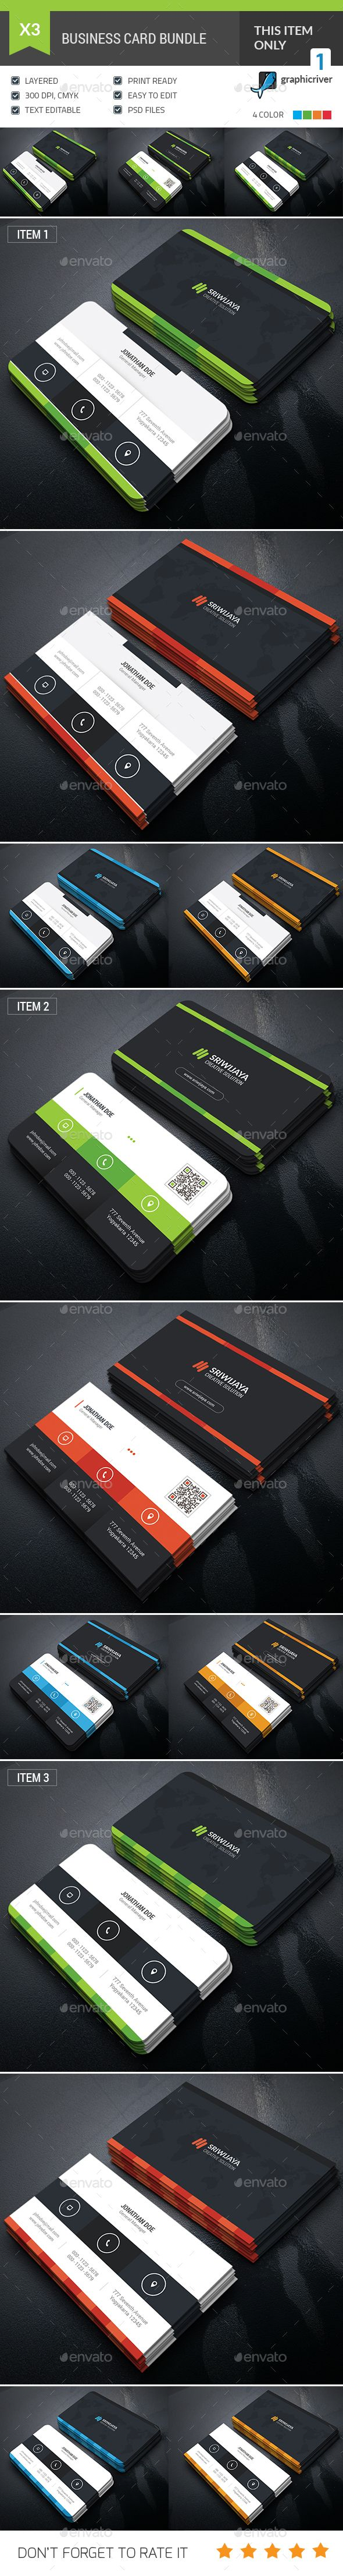 5987 best business card templates images on pinterest